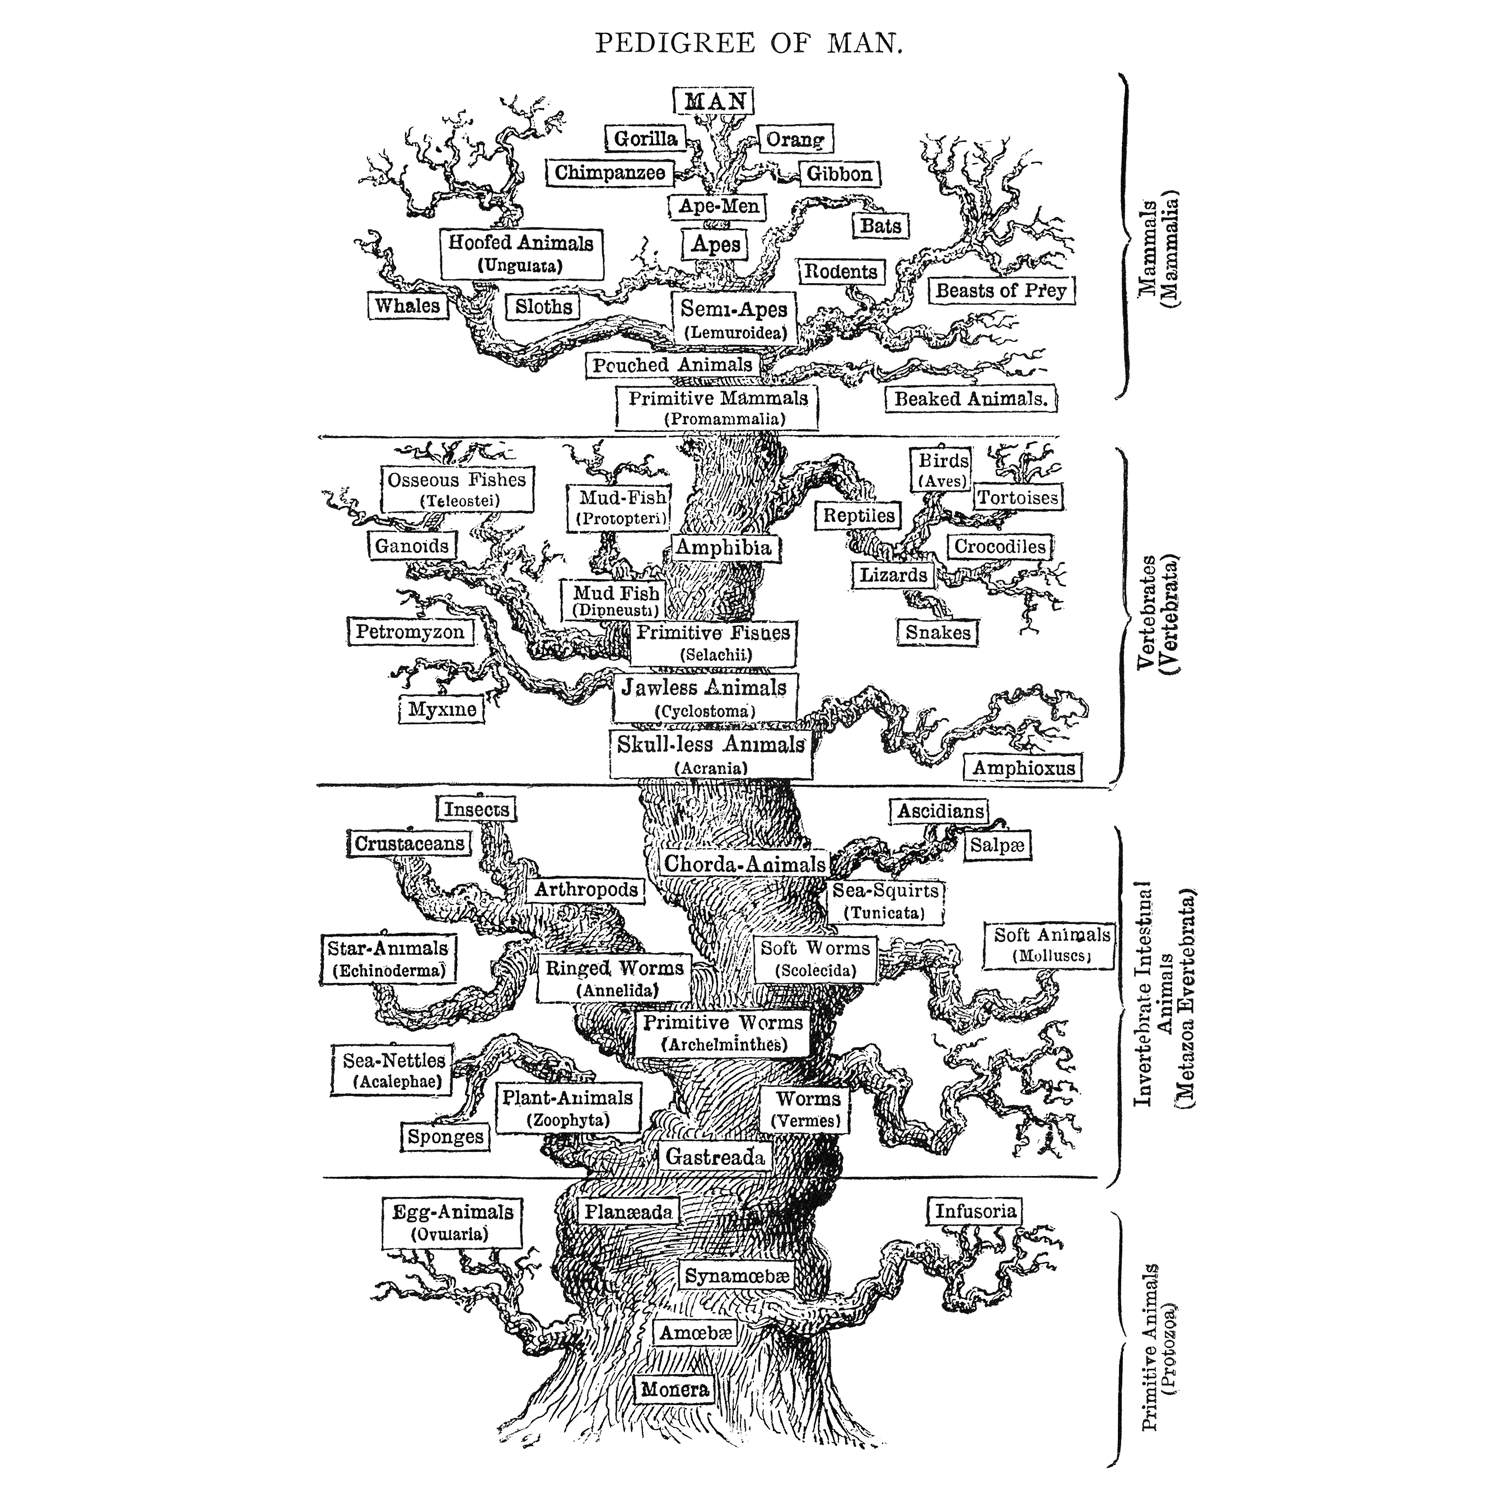 Ernst Haeckel's hypothesis for animal phylogeny.